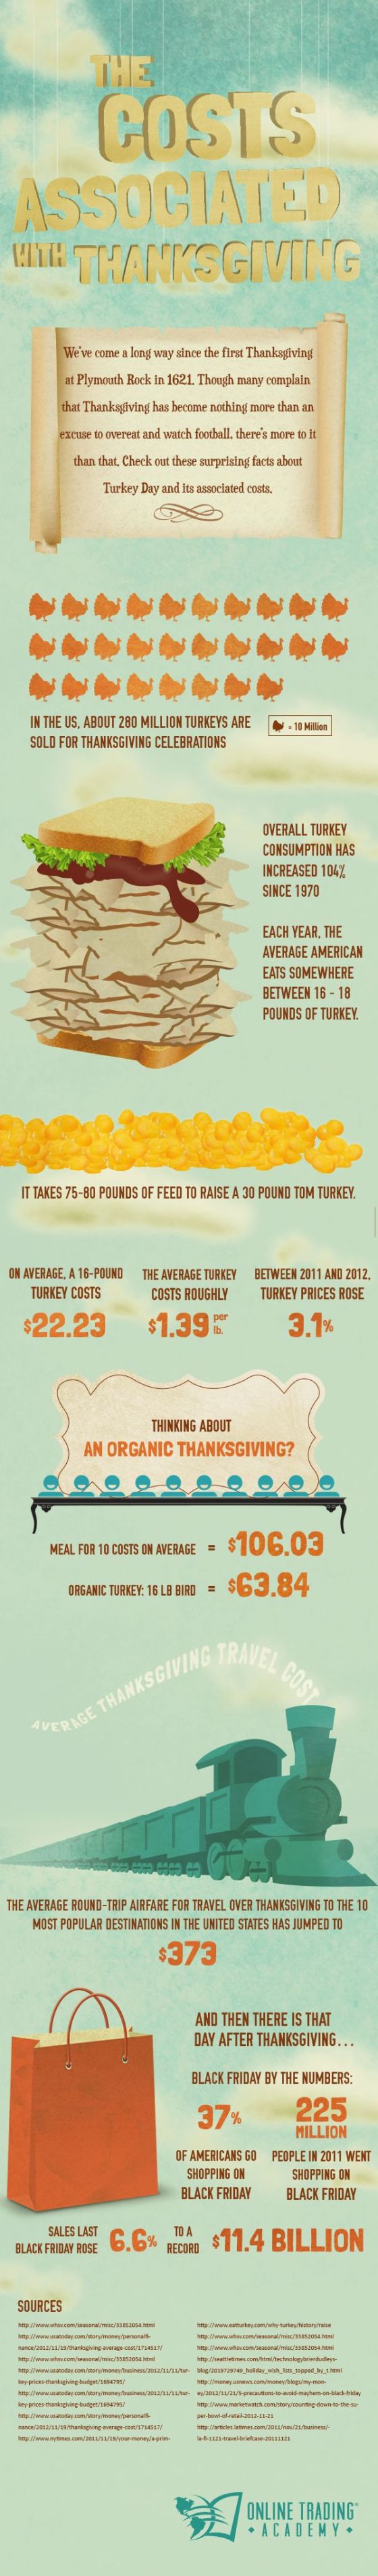 Infographic : Thanksgiving Spending in 2013